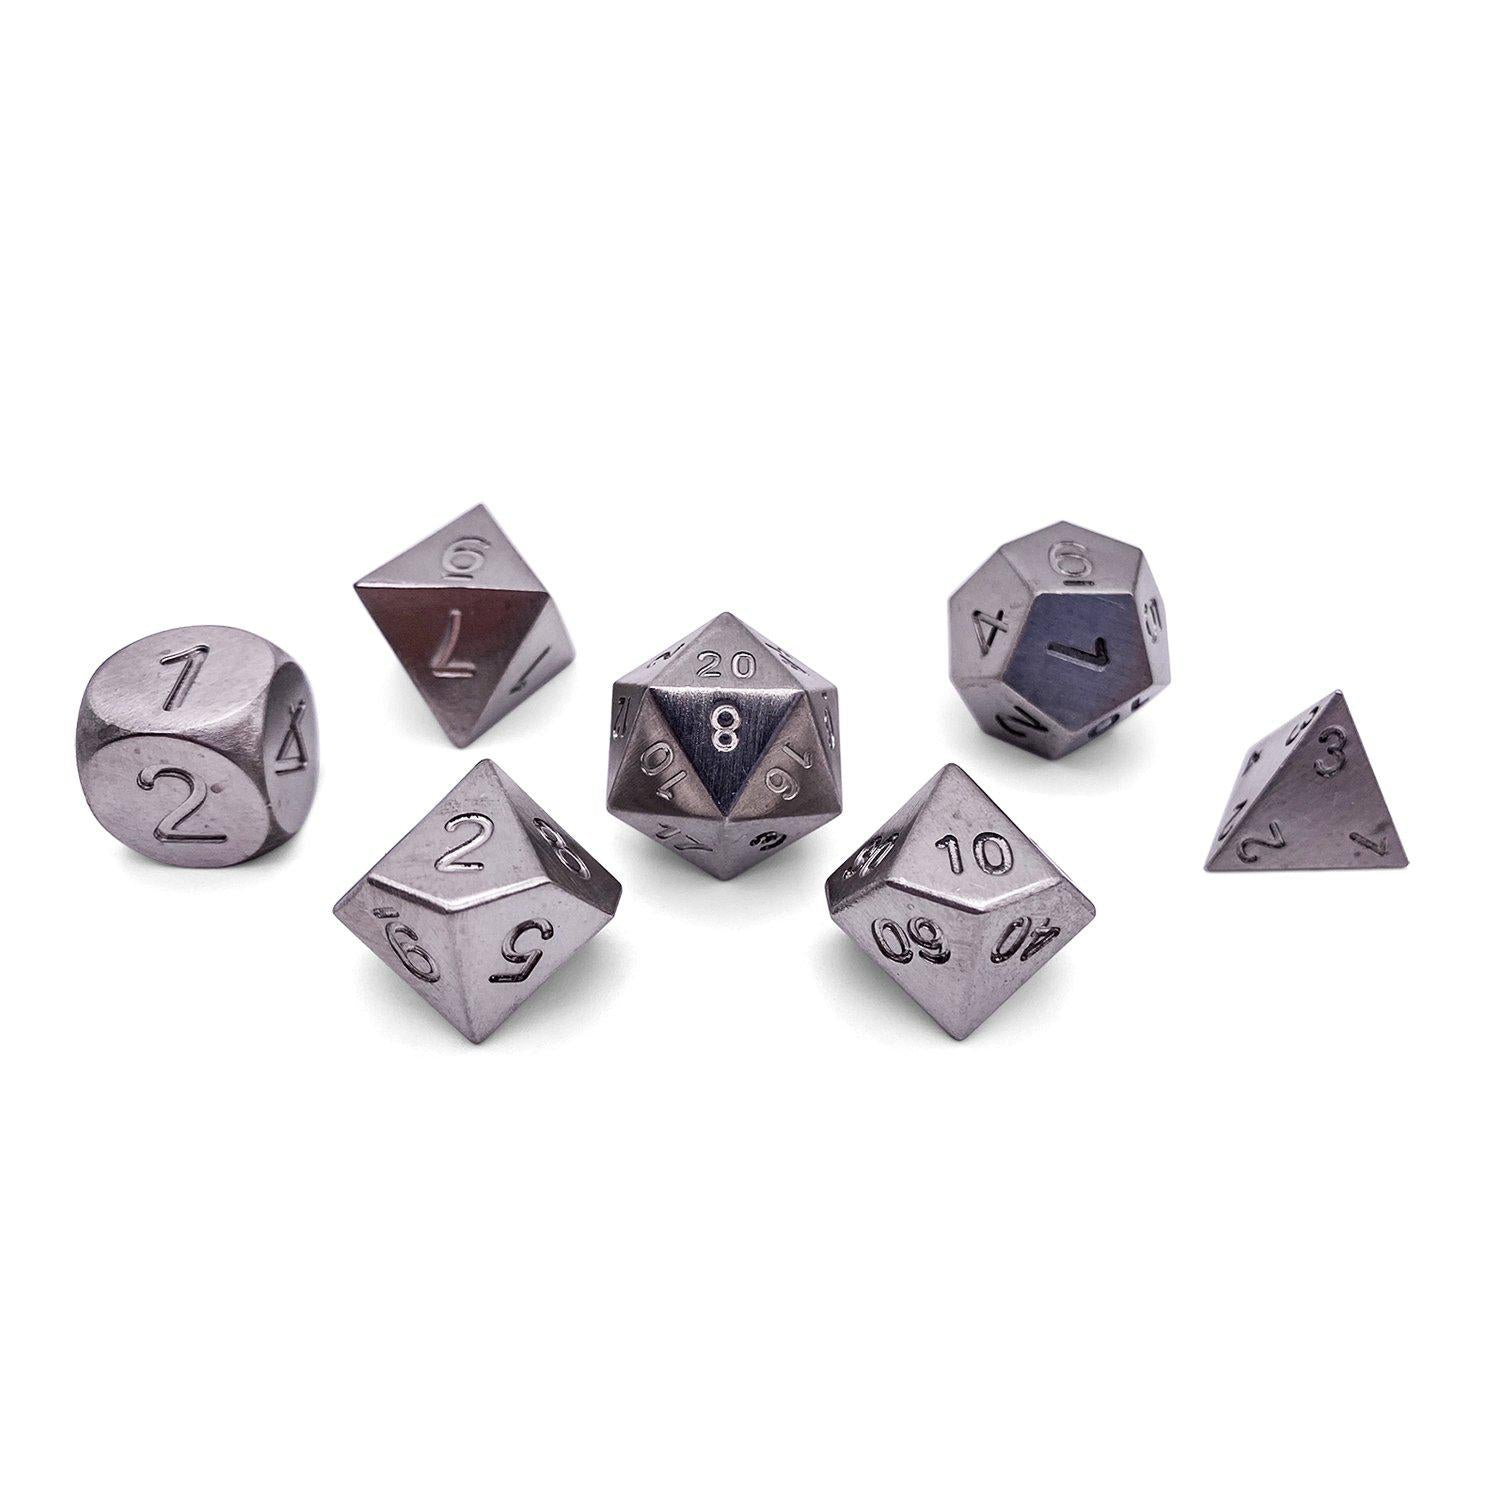 16mm Norse Foundry Tungsten Polyhedral Dice Set Norse foundry boulder and metal dice: norse foundry